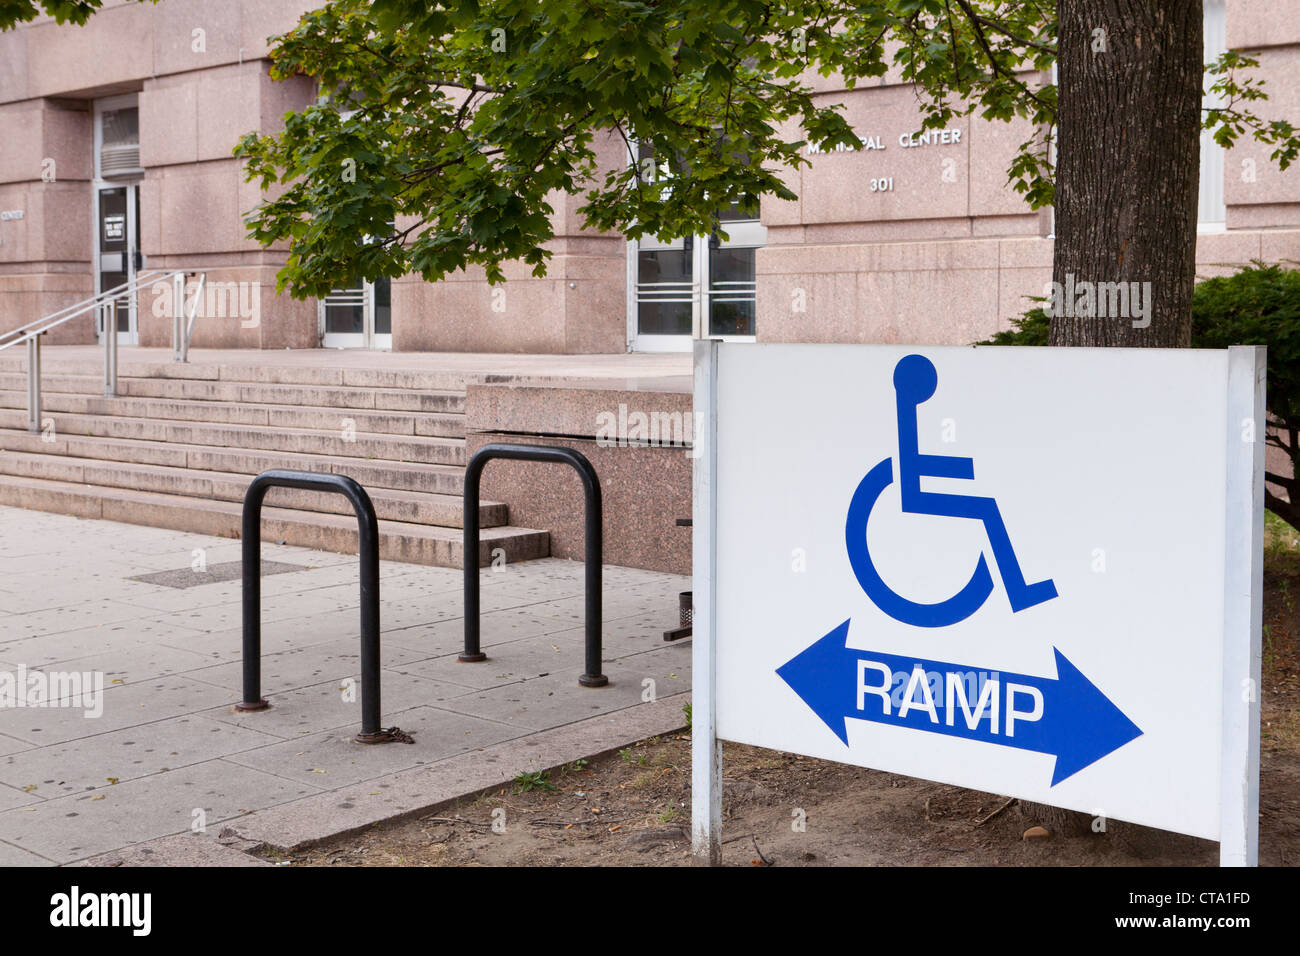 Disabled ramp sign in front of building - Stock Image